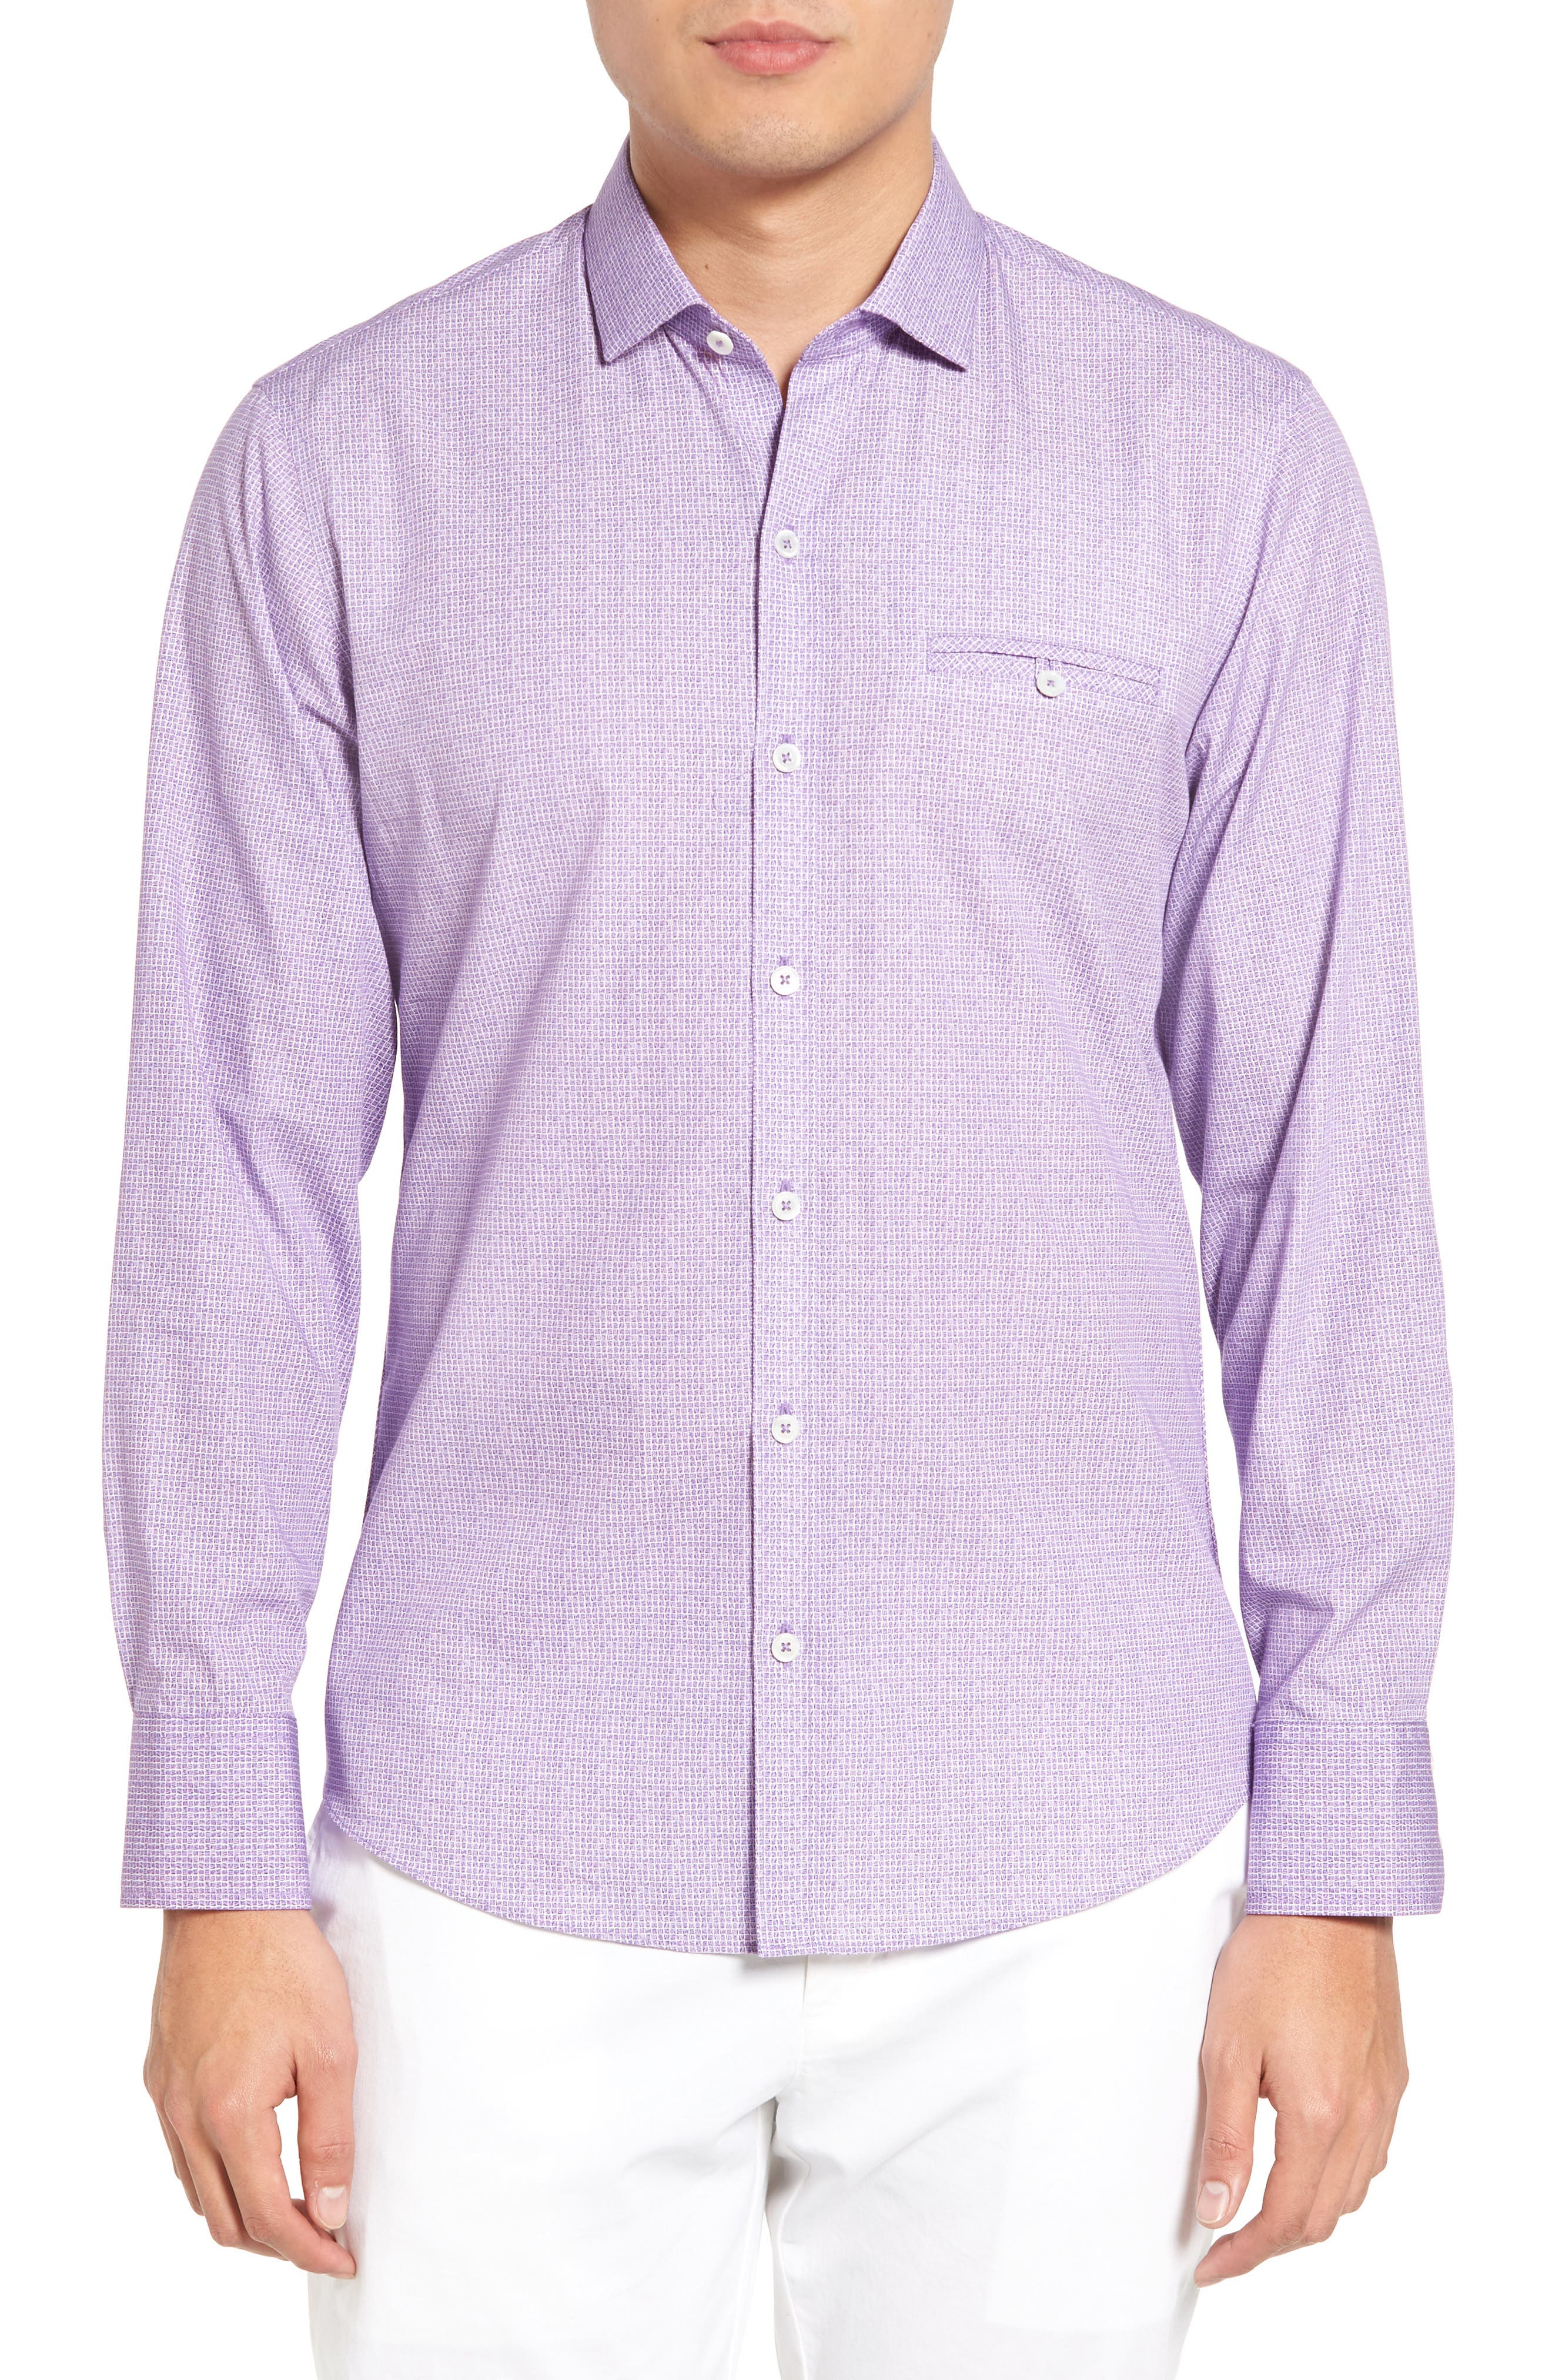 Alternate Image 1 Selected - Zachary Prell McDesmond Trim Fit Print Sport Shirt